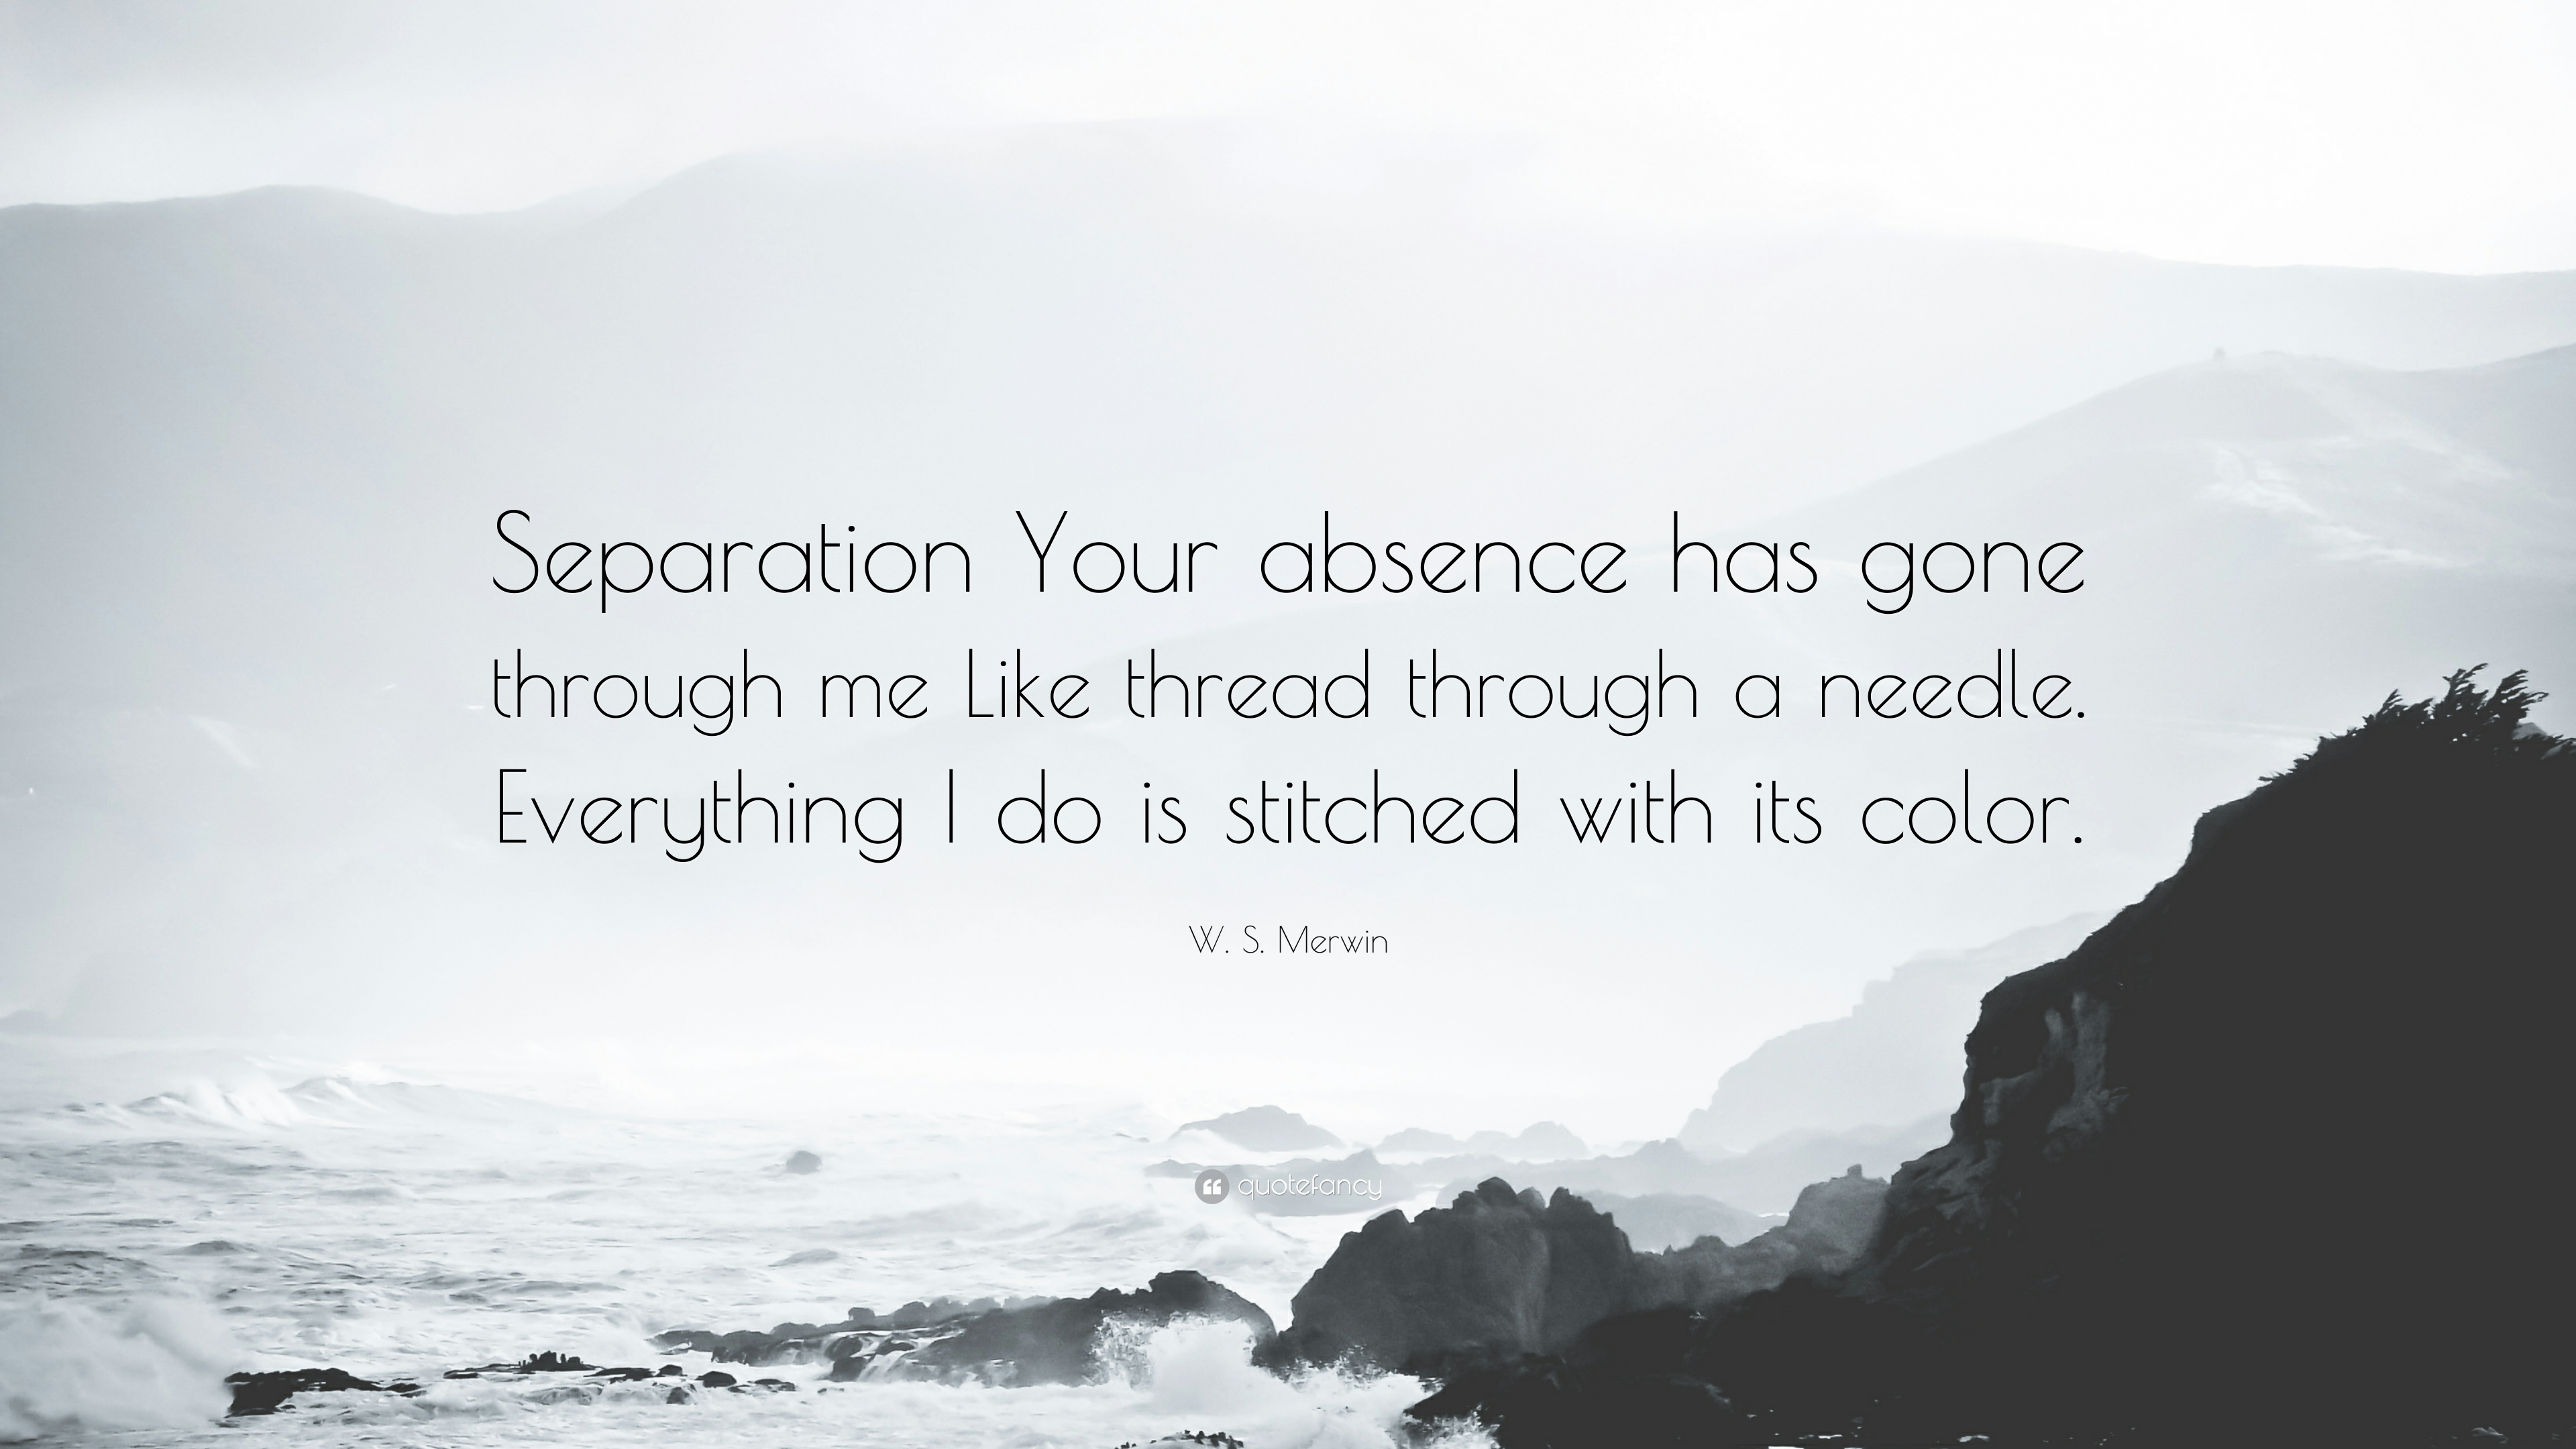 W. S. Merwin Quote: Separation Your absence has gone